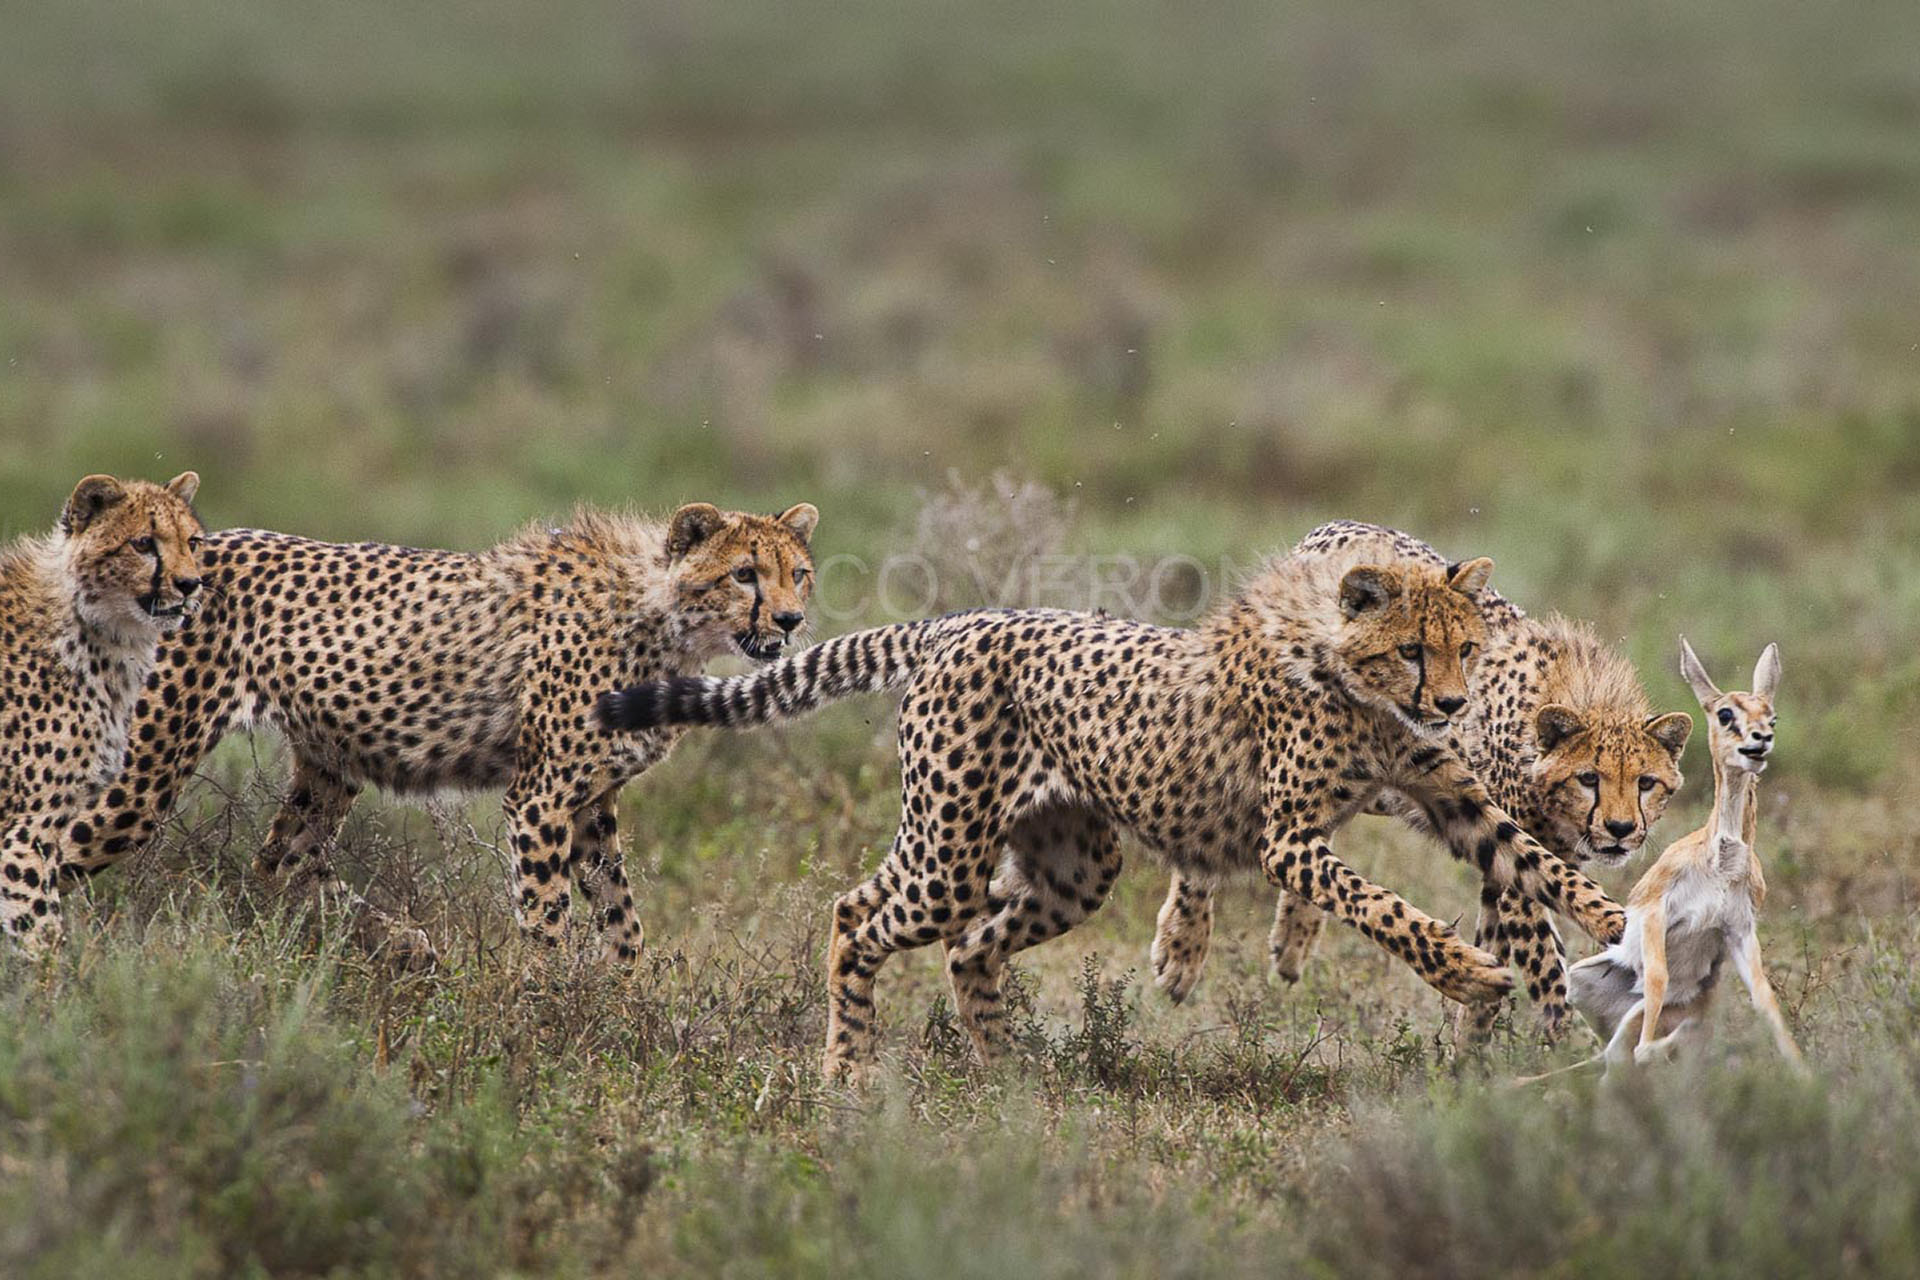 federico-veronesi-photography-signature-photo-safaris-maasai-wanderings-africa-wildlife-cheetahs